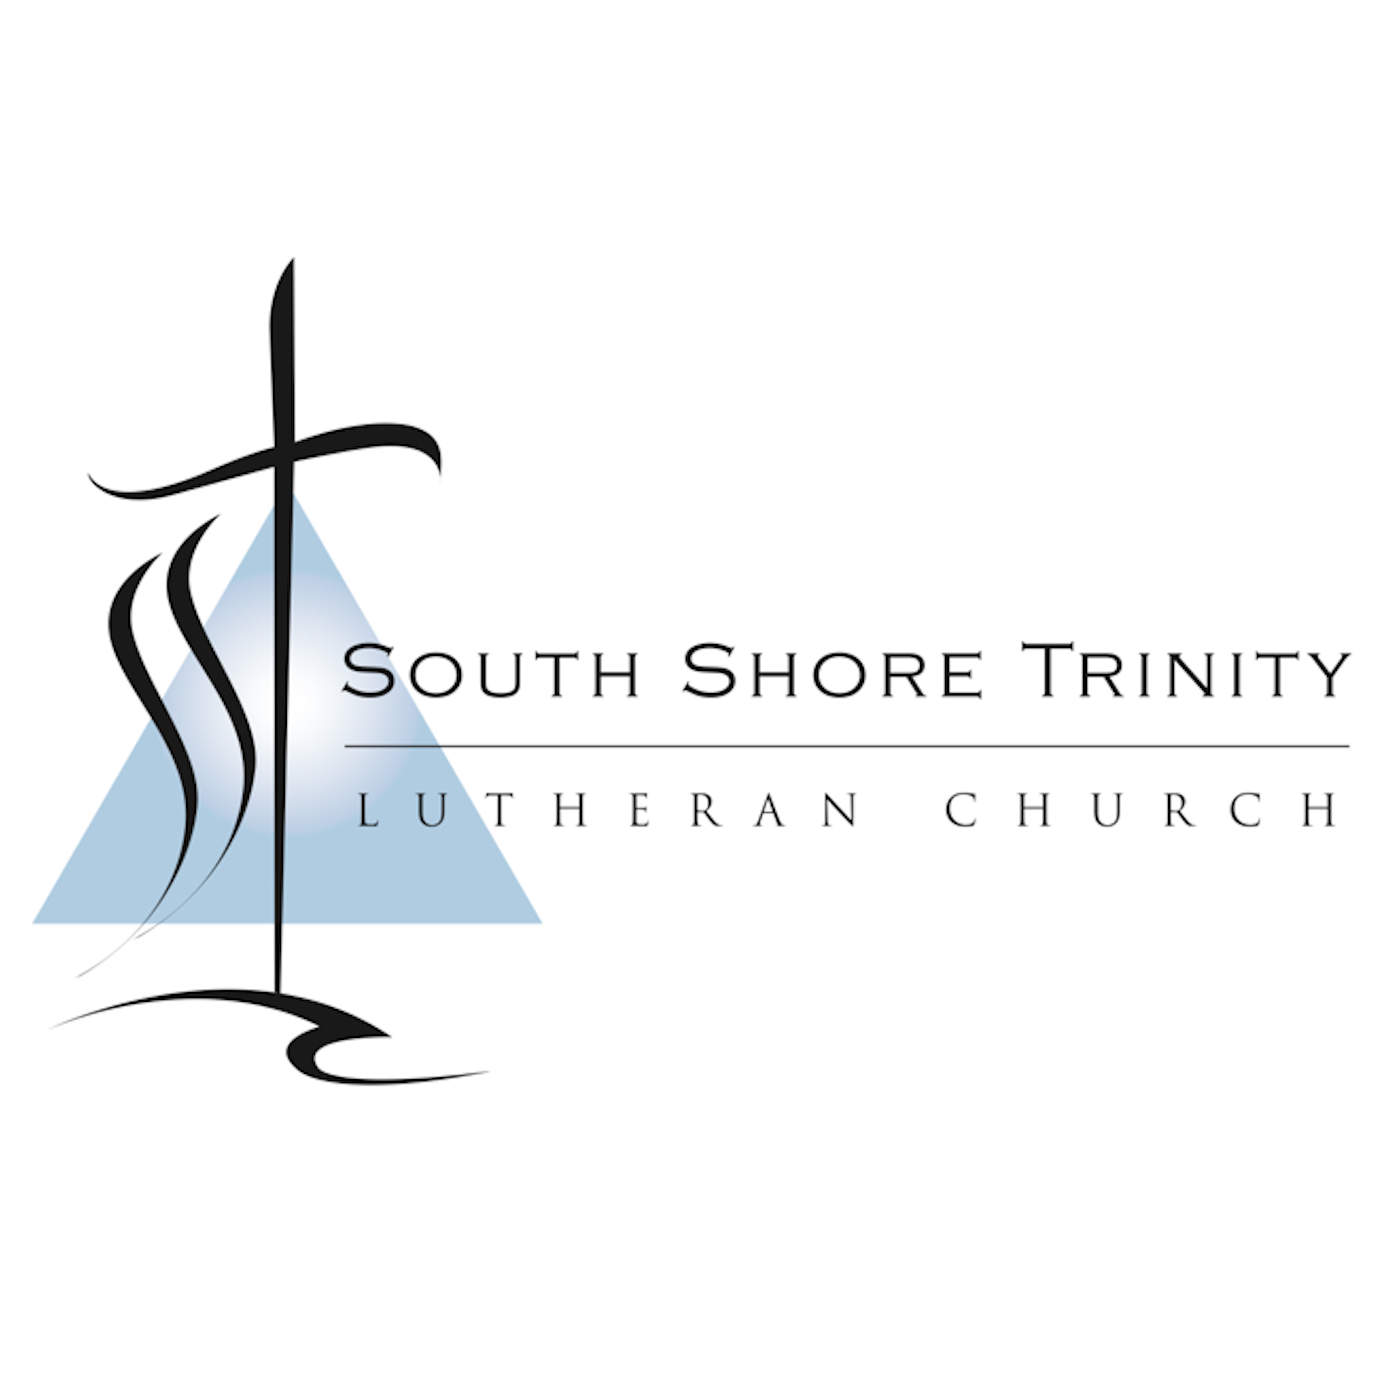 South Shore Trinity Lutheran Church Sermons